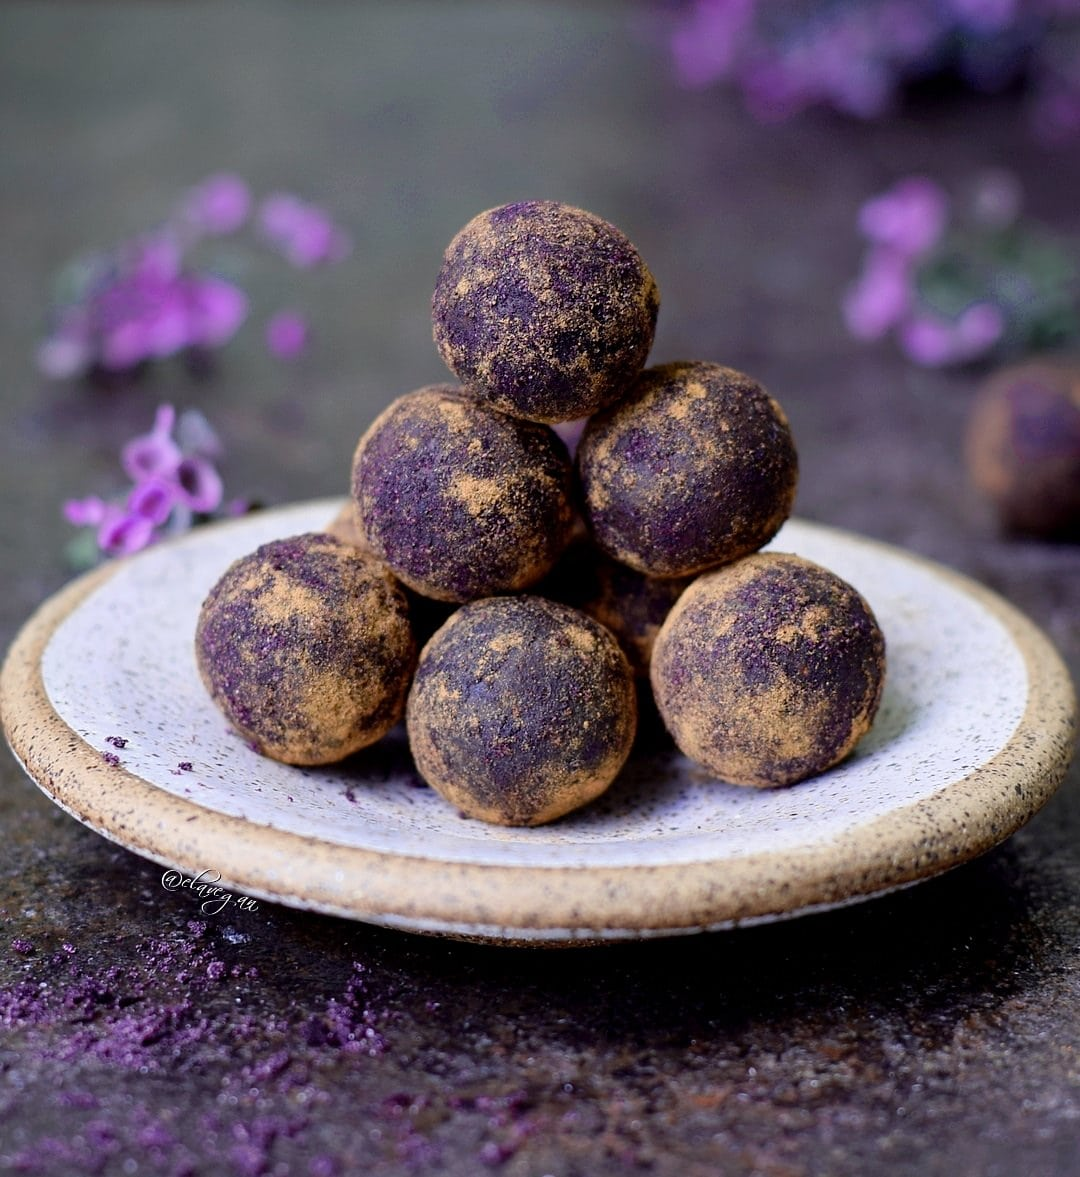 Bliss balls recipe with mulberries, maqui berry powder and cinnamon. Easy to make vegan and gluten free raw truffles